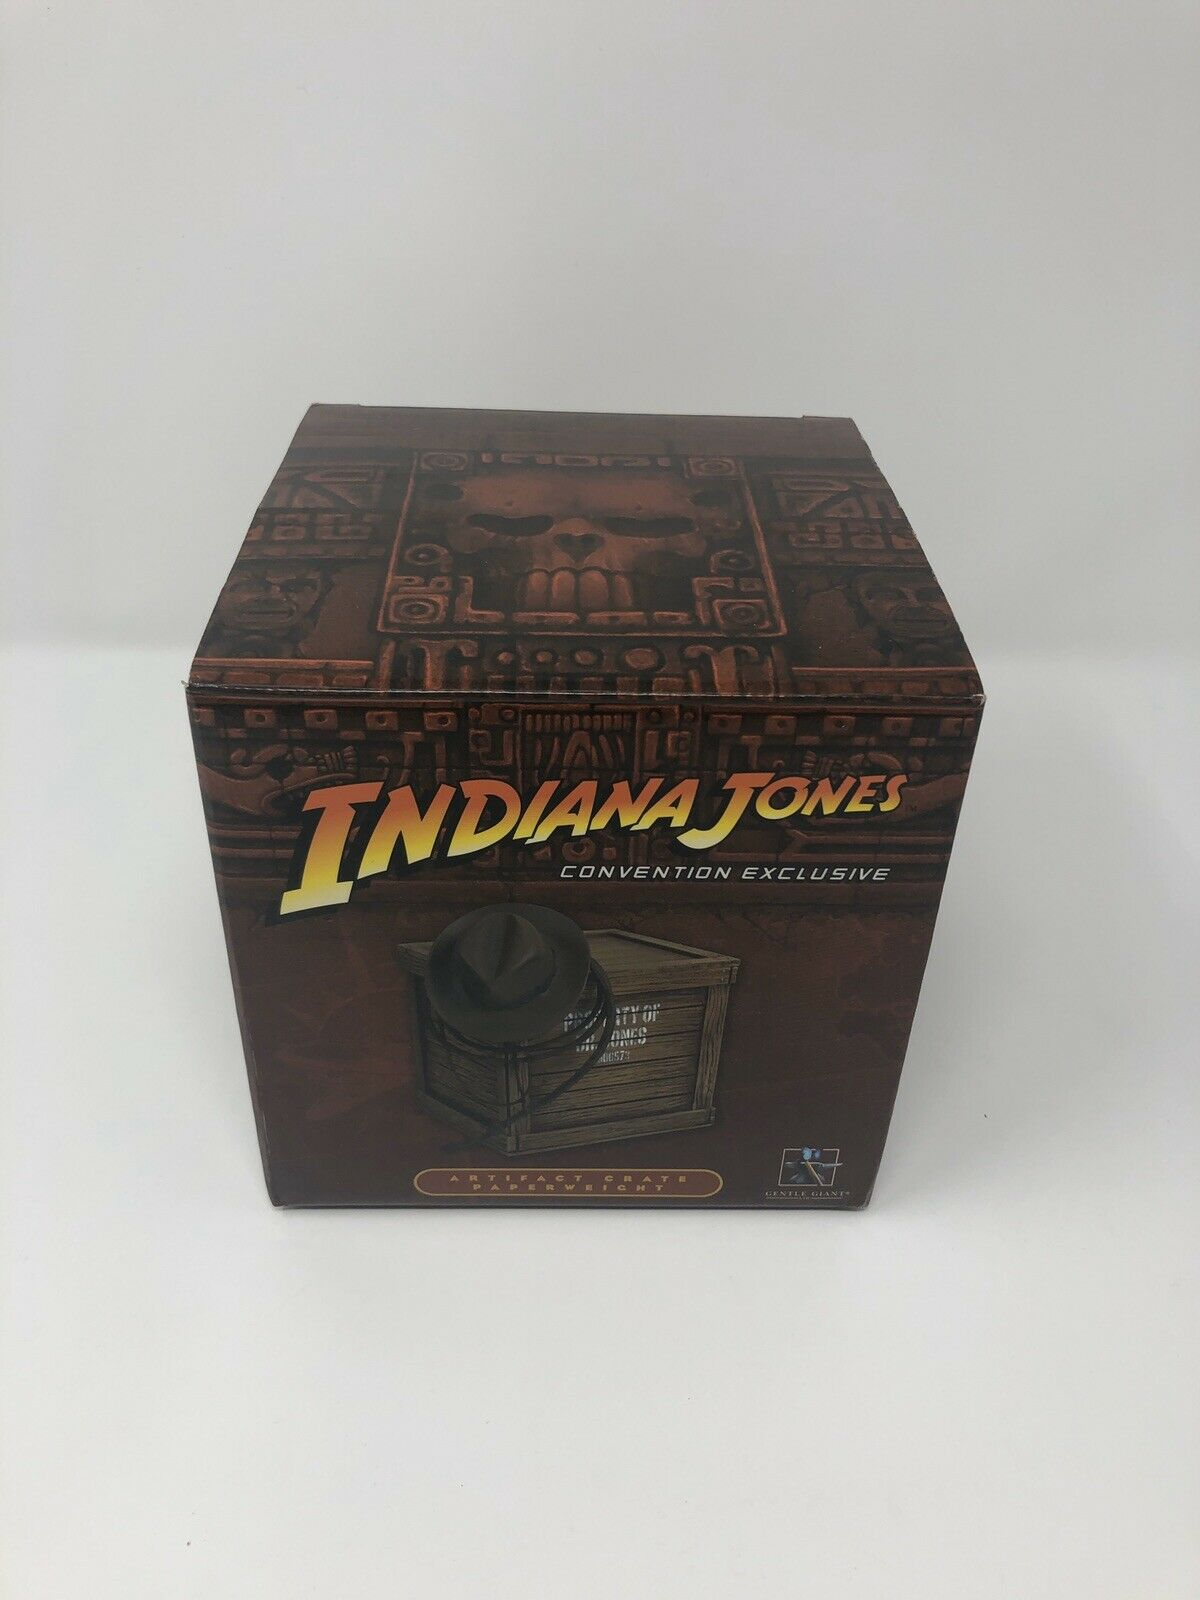 Indiana Jones Convention Exclusive Artifact Crate Paperweight Set Gentle Giant 2